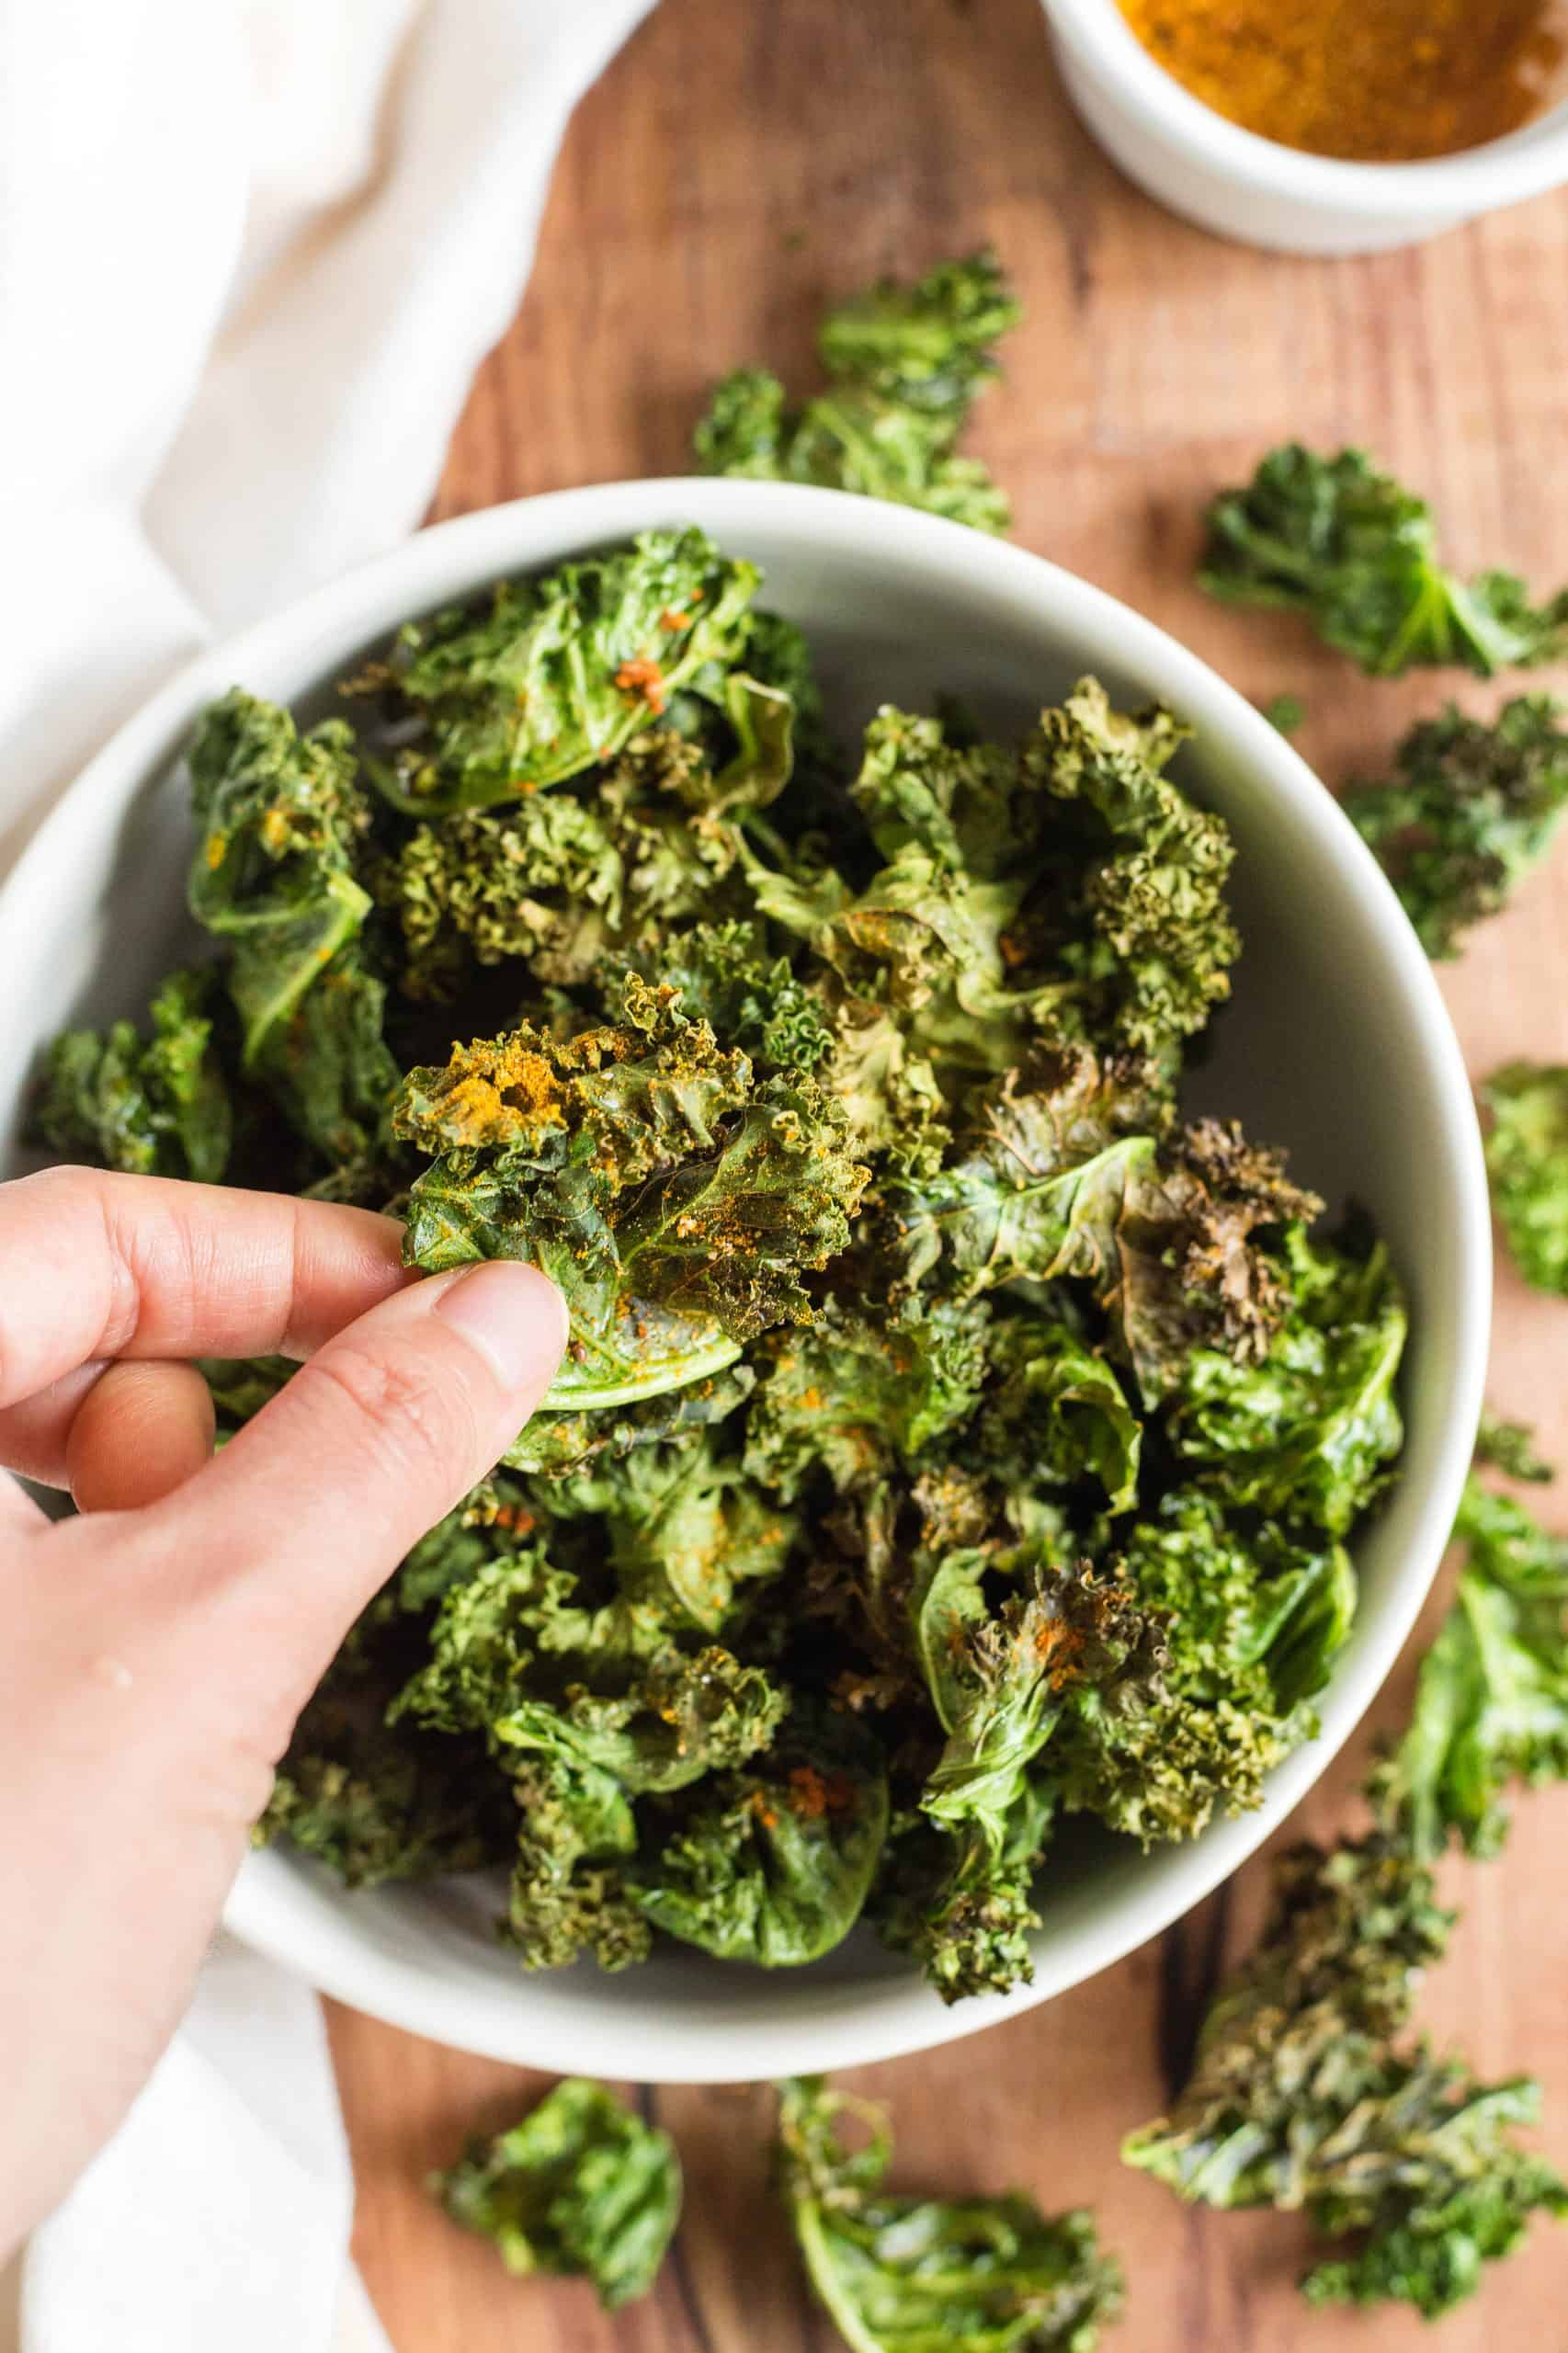 Hand holding up a kale chip from a bowl.